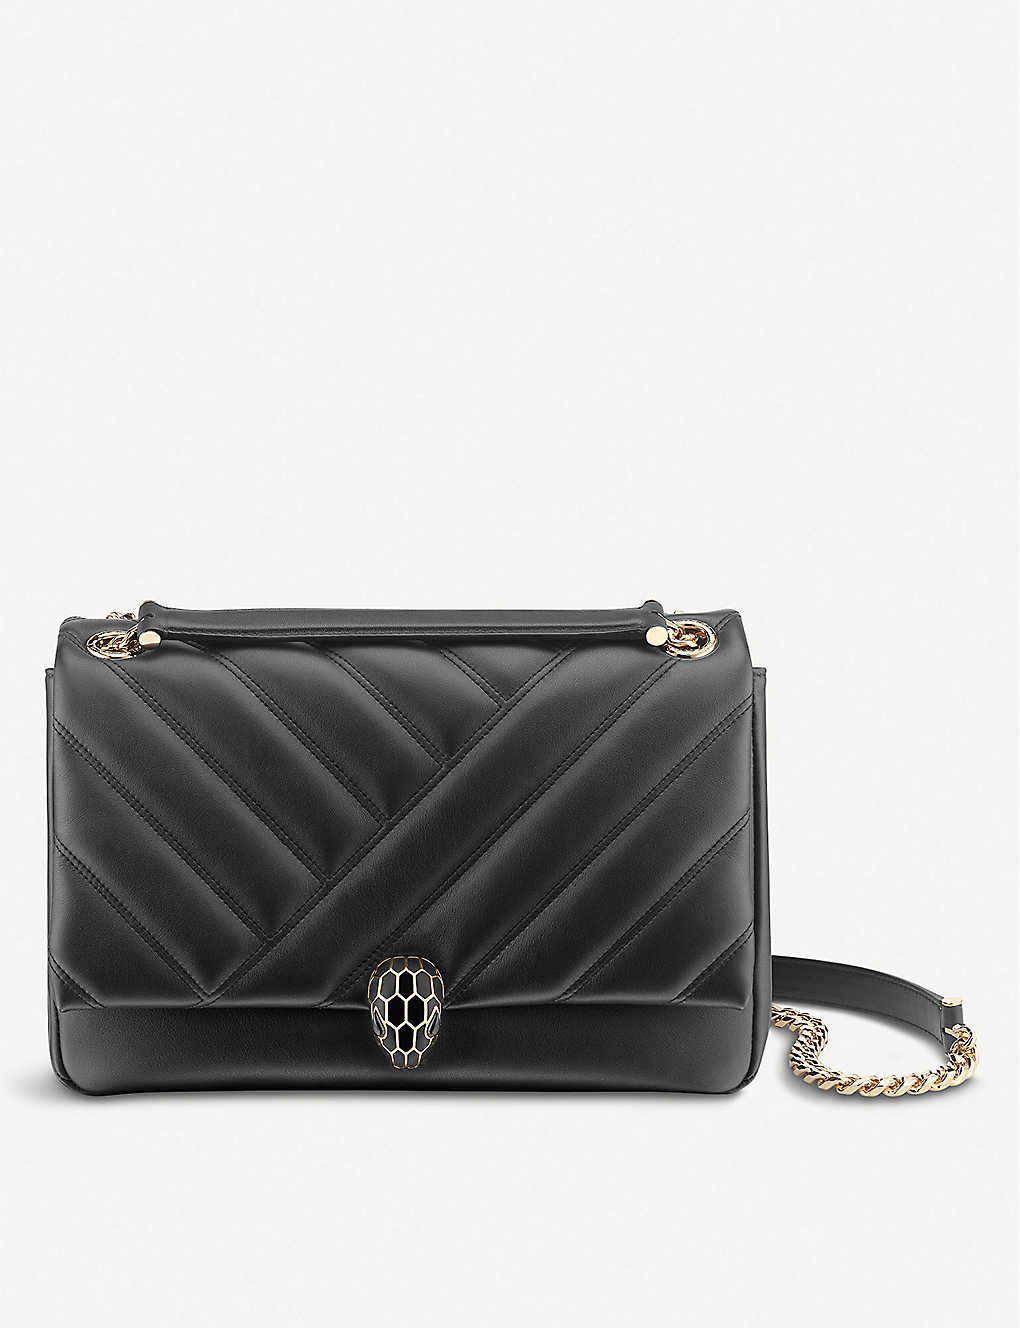 BVLGARI: Serpenti Cabochon leather shoulder bag